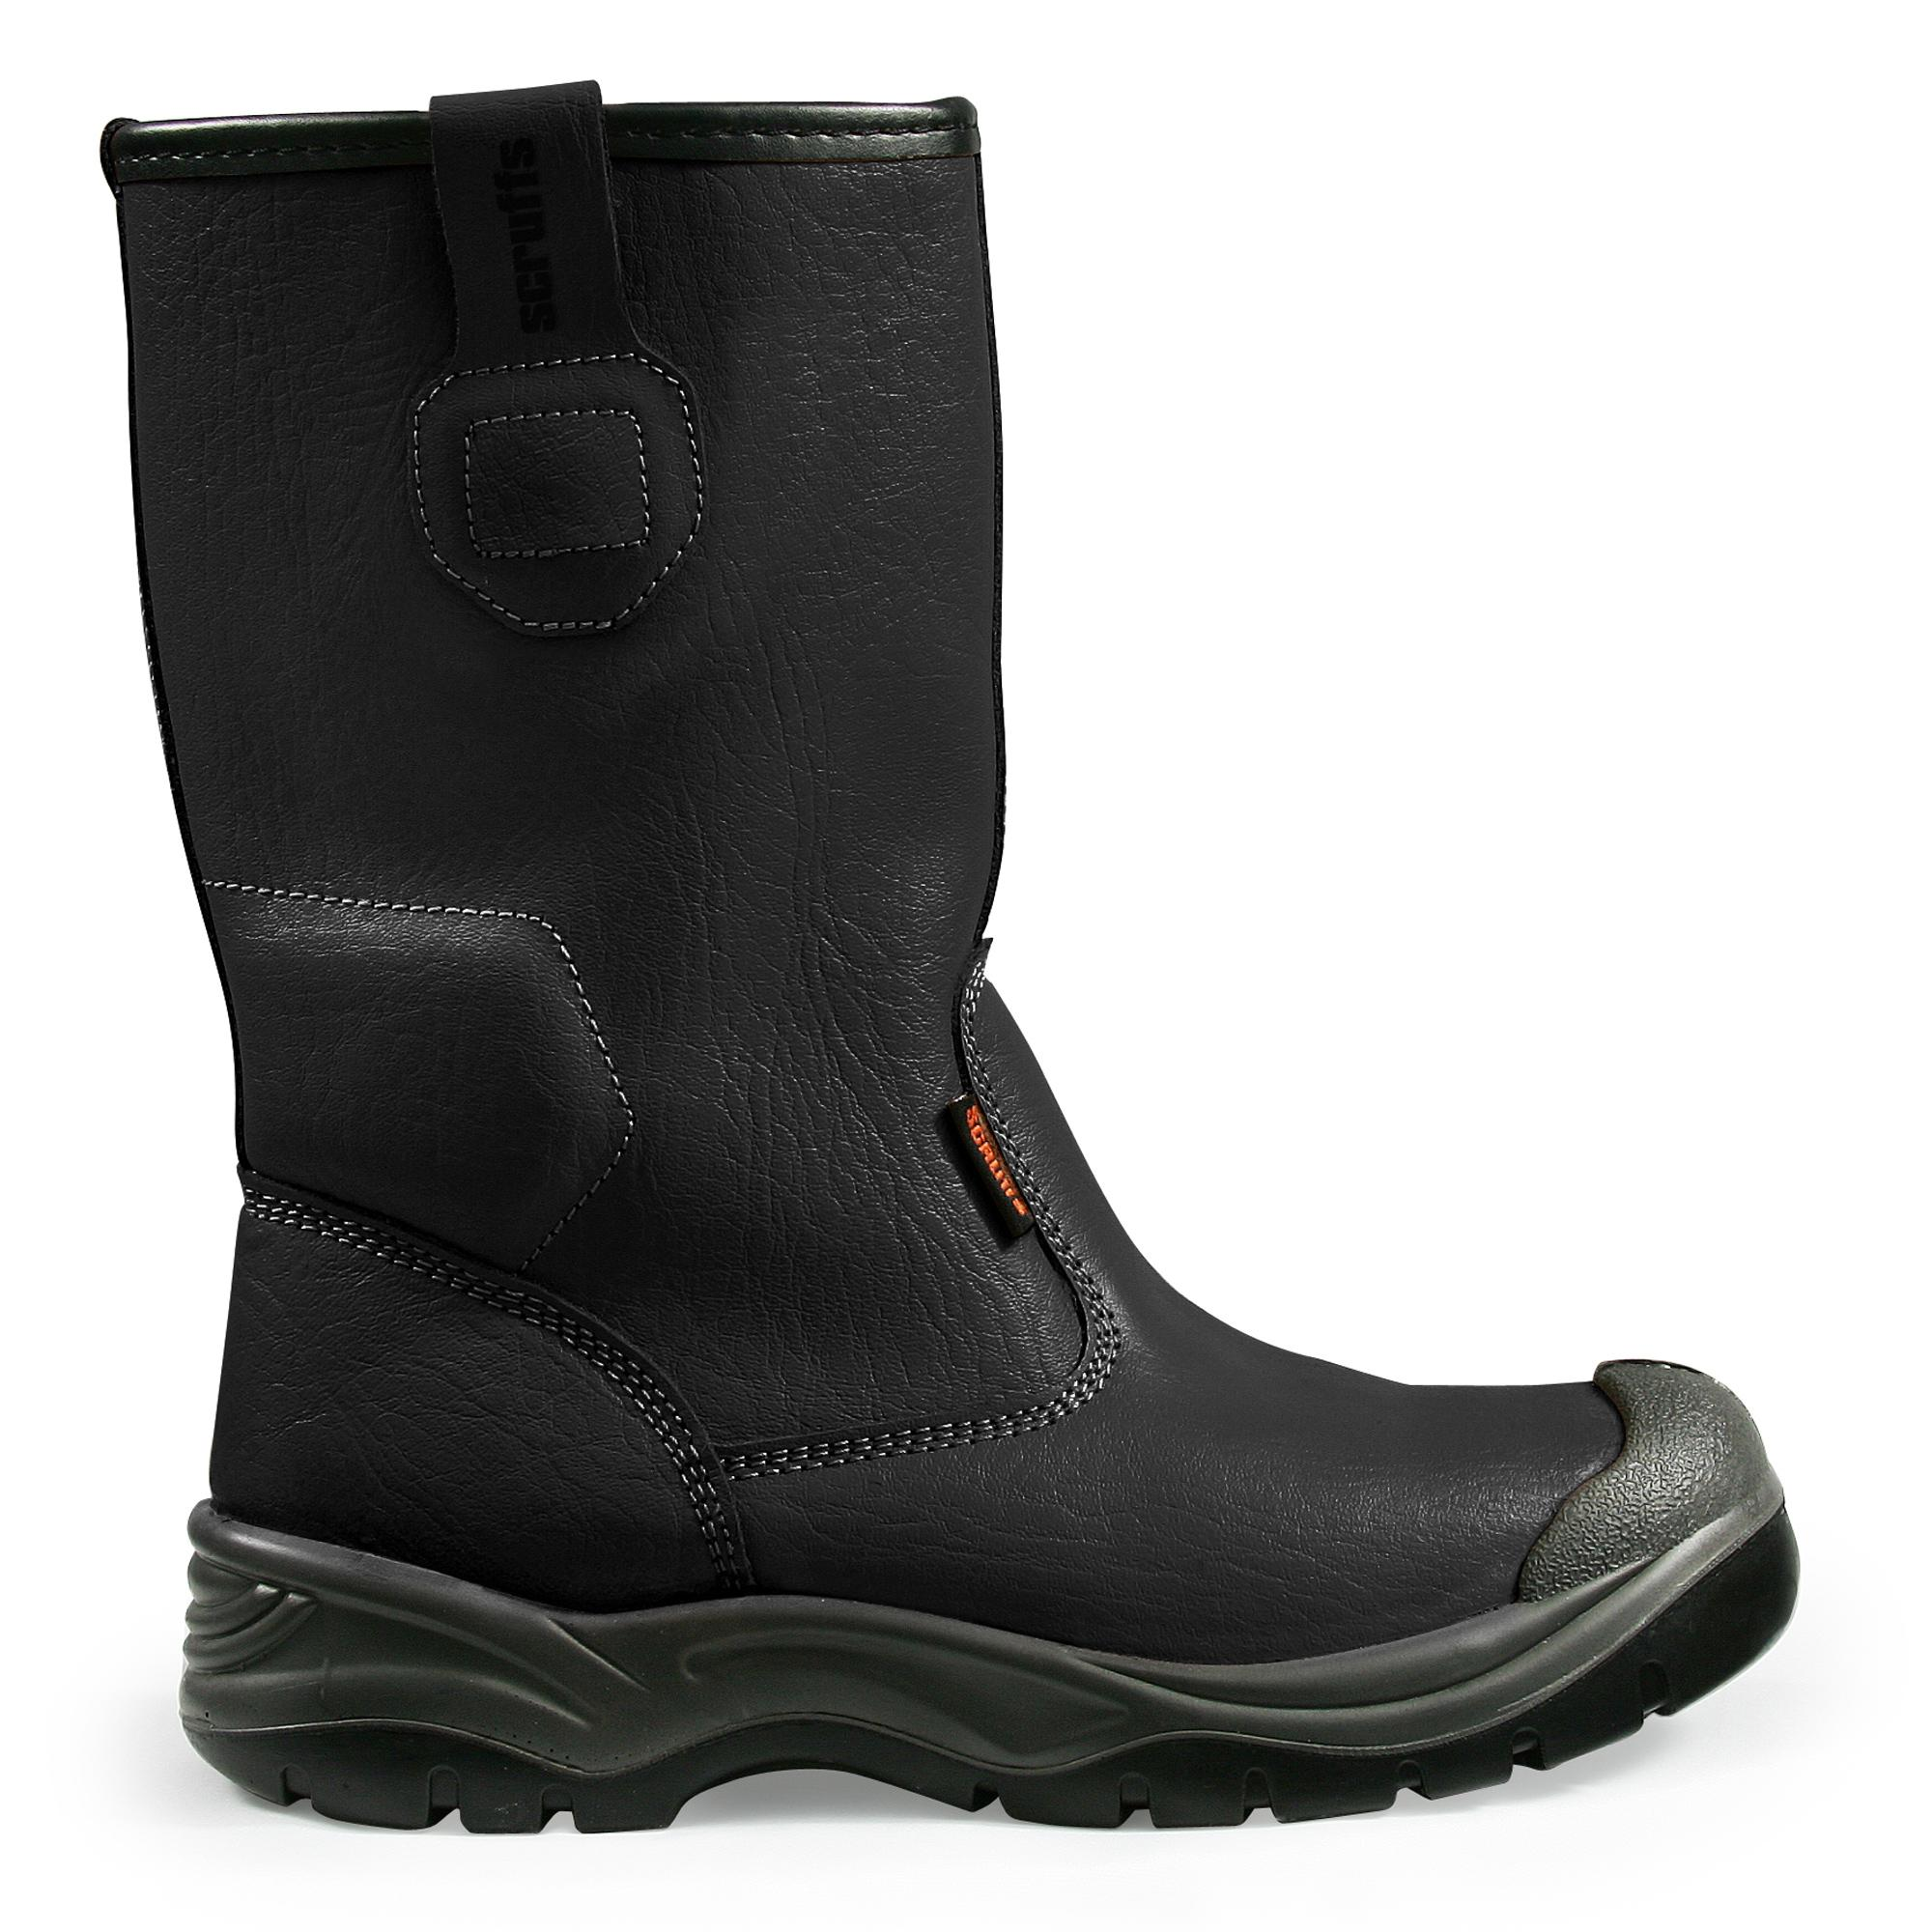 Gravity Rigger Boots Black Size 12